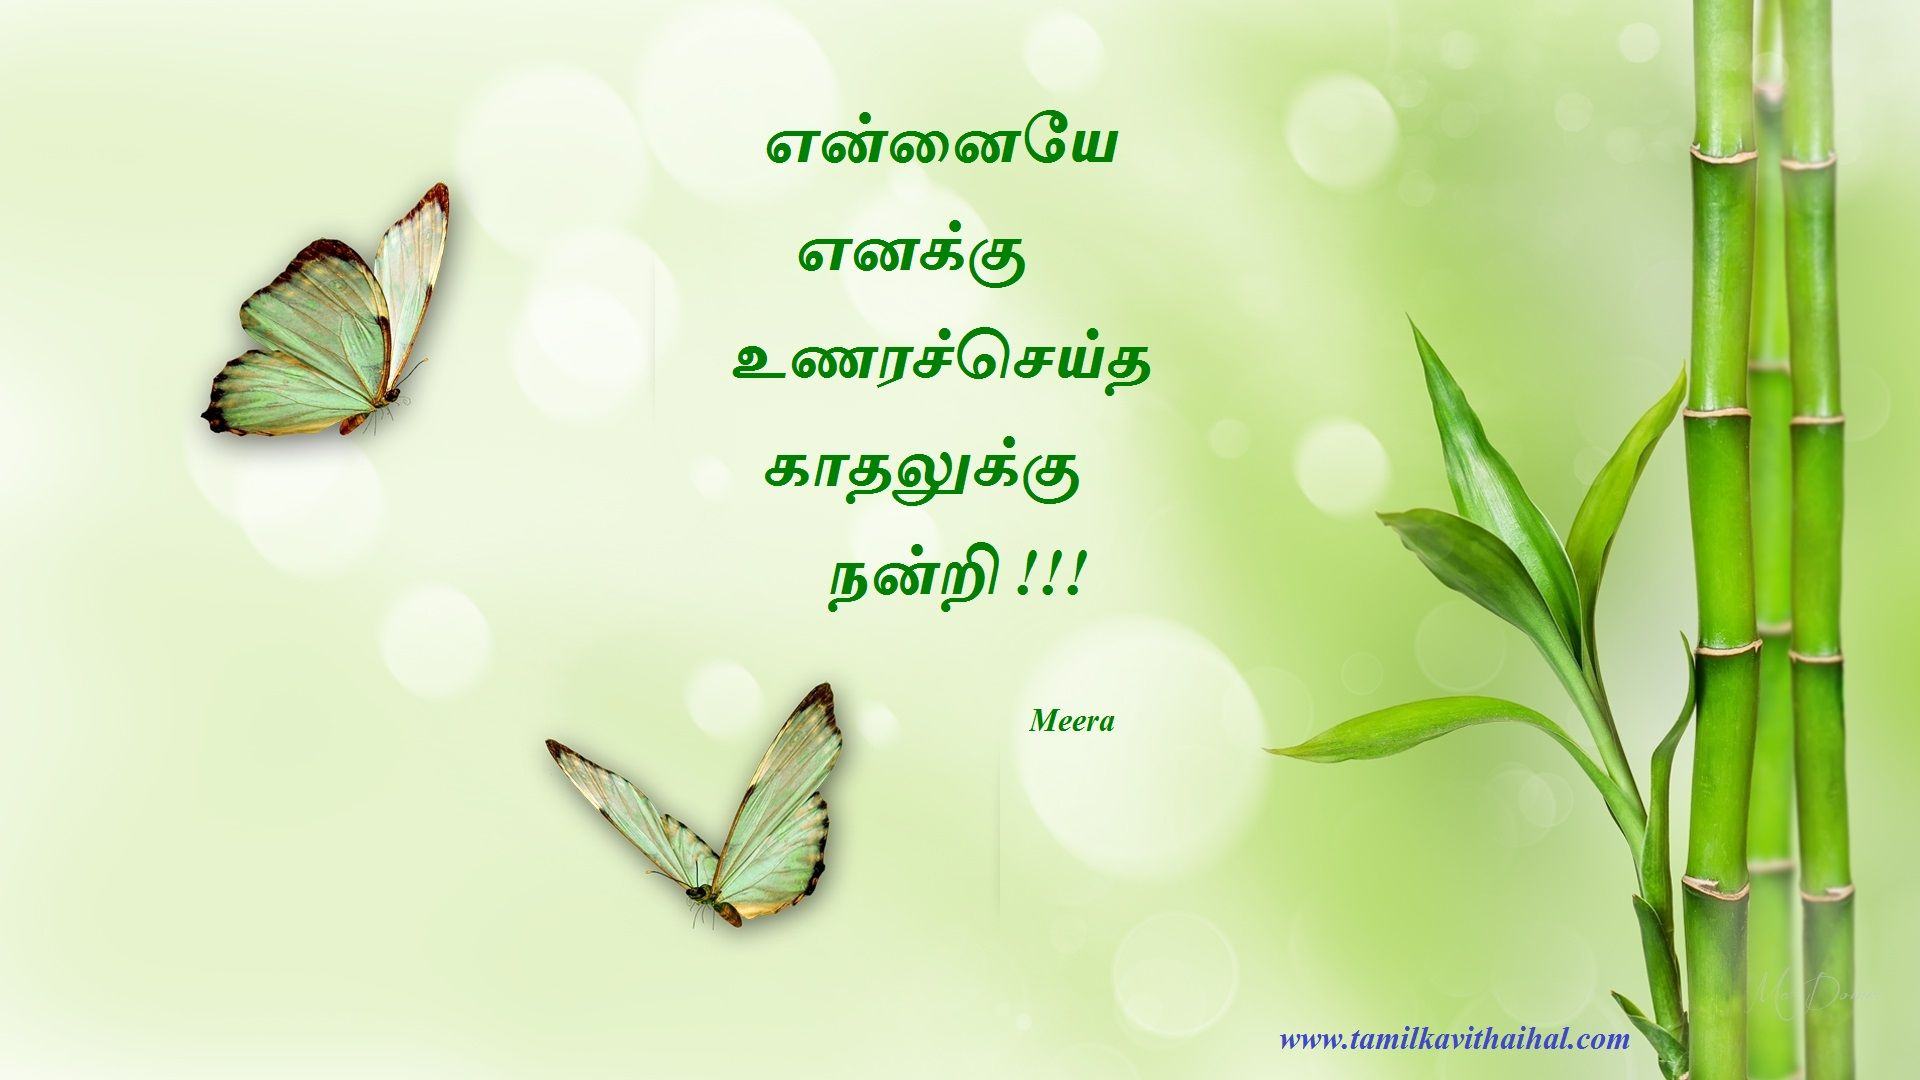 Love kavithaigal tamil kavithai quotes latest kavithaigal meera hd love kavithaigal tamil kavithai quotes latest kavithaigal meera hd wallpaper images download thecheapjerseys Images